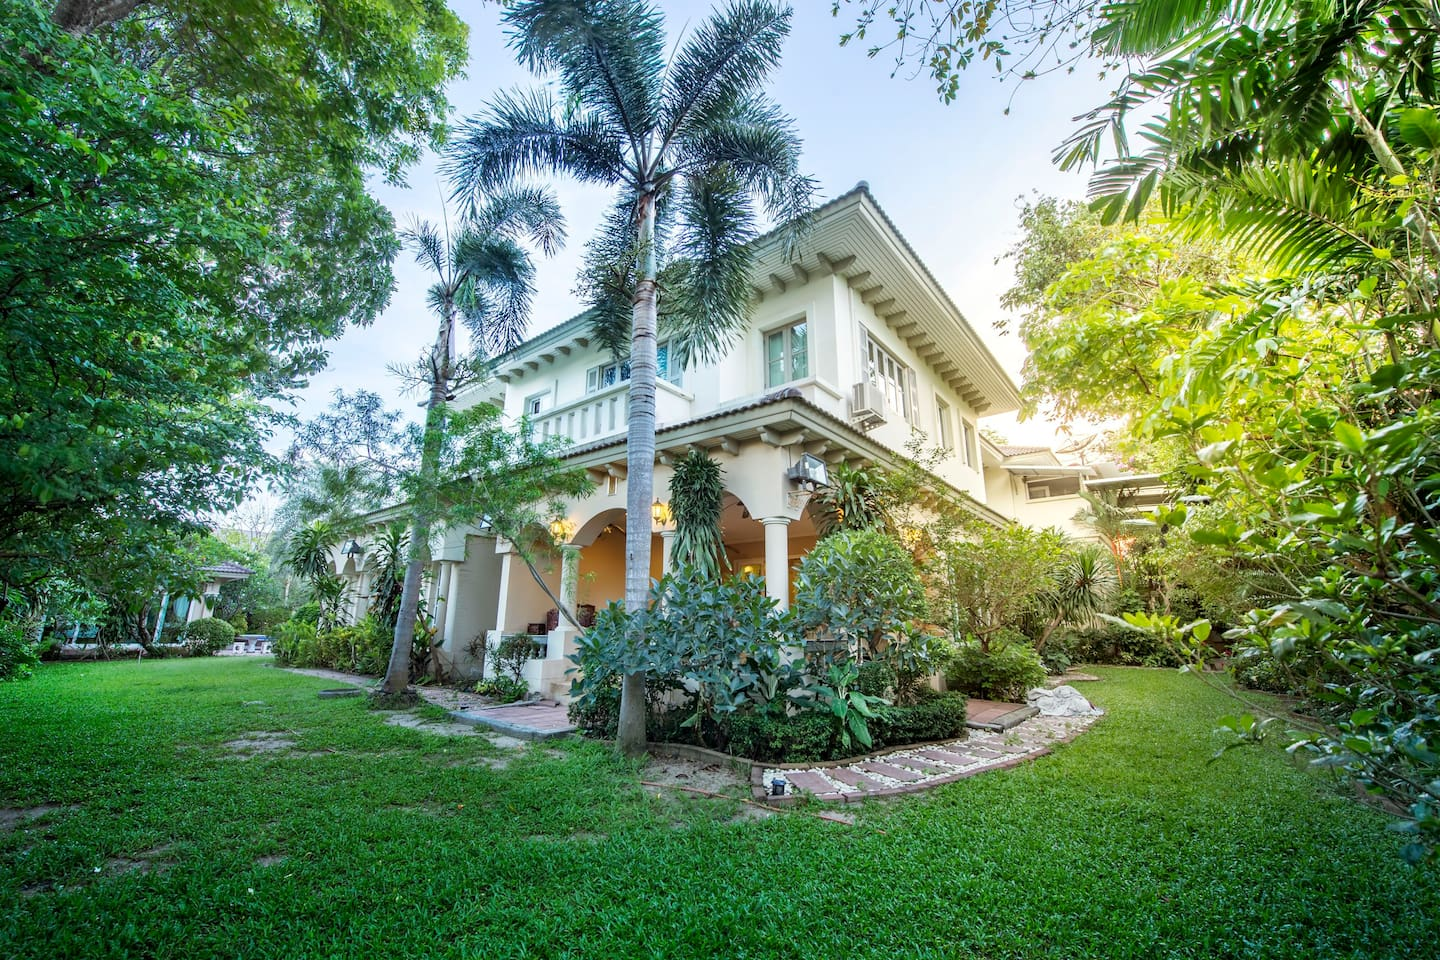 Bangkok Grand Villa with Private Pool Vacation Rentals in Bangkok 01